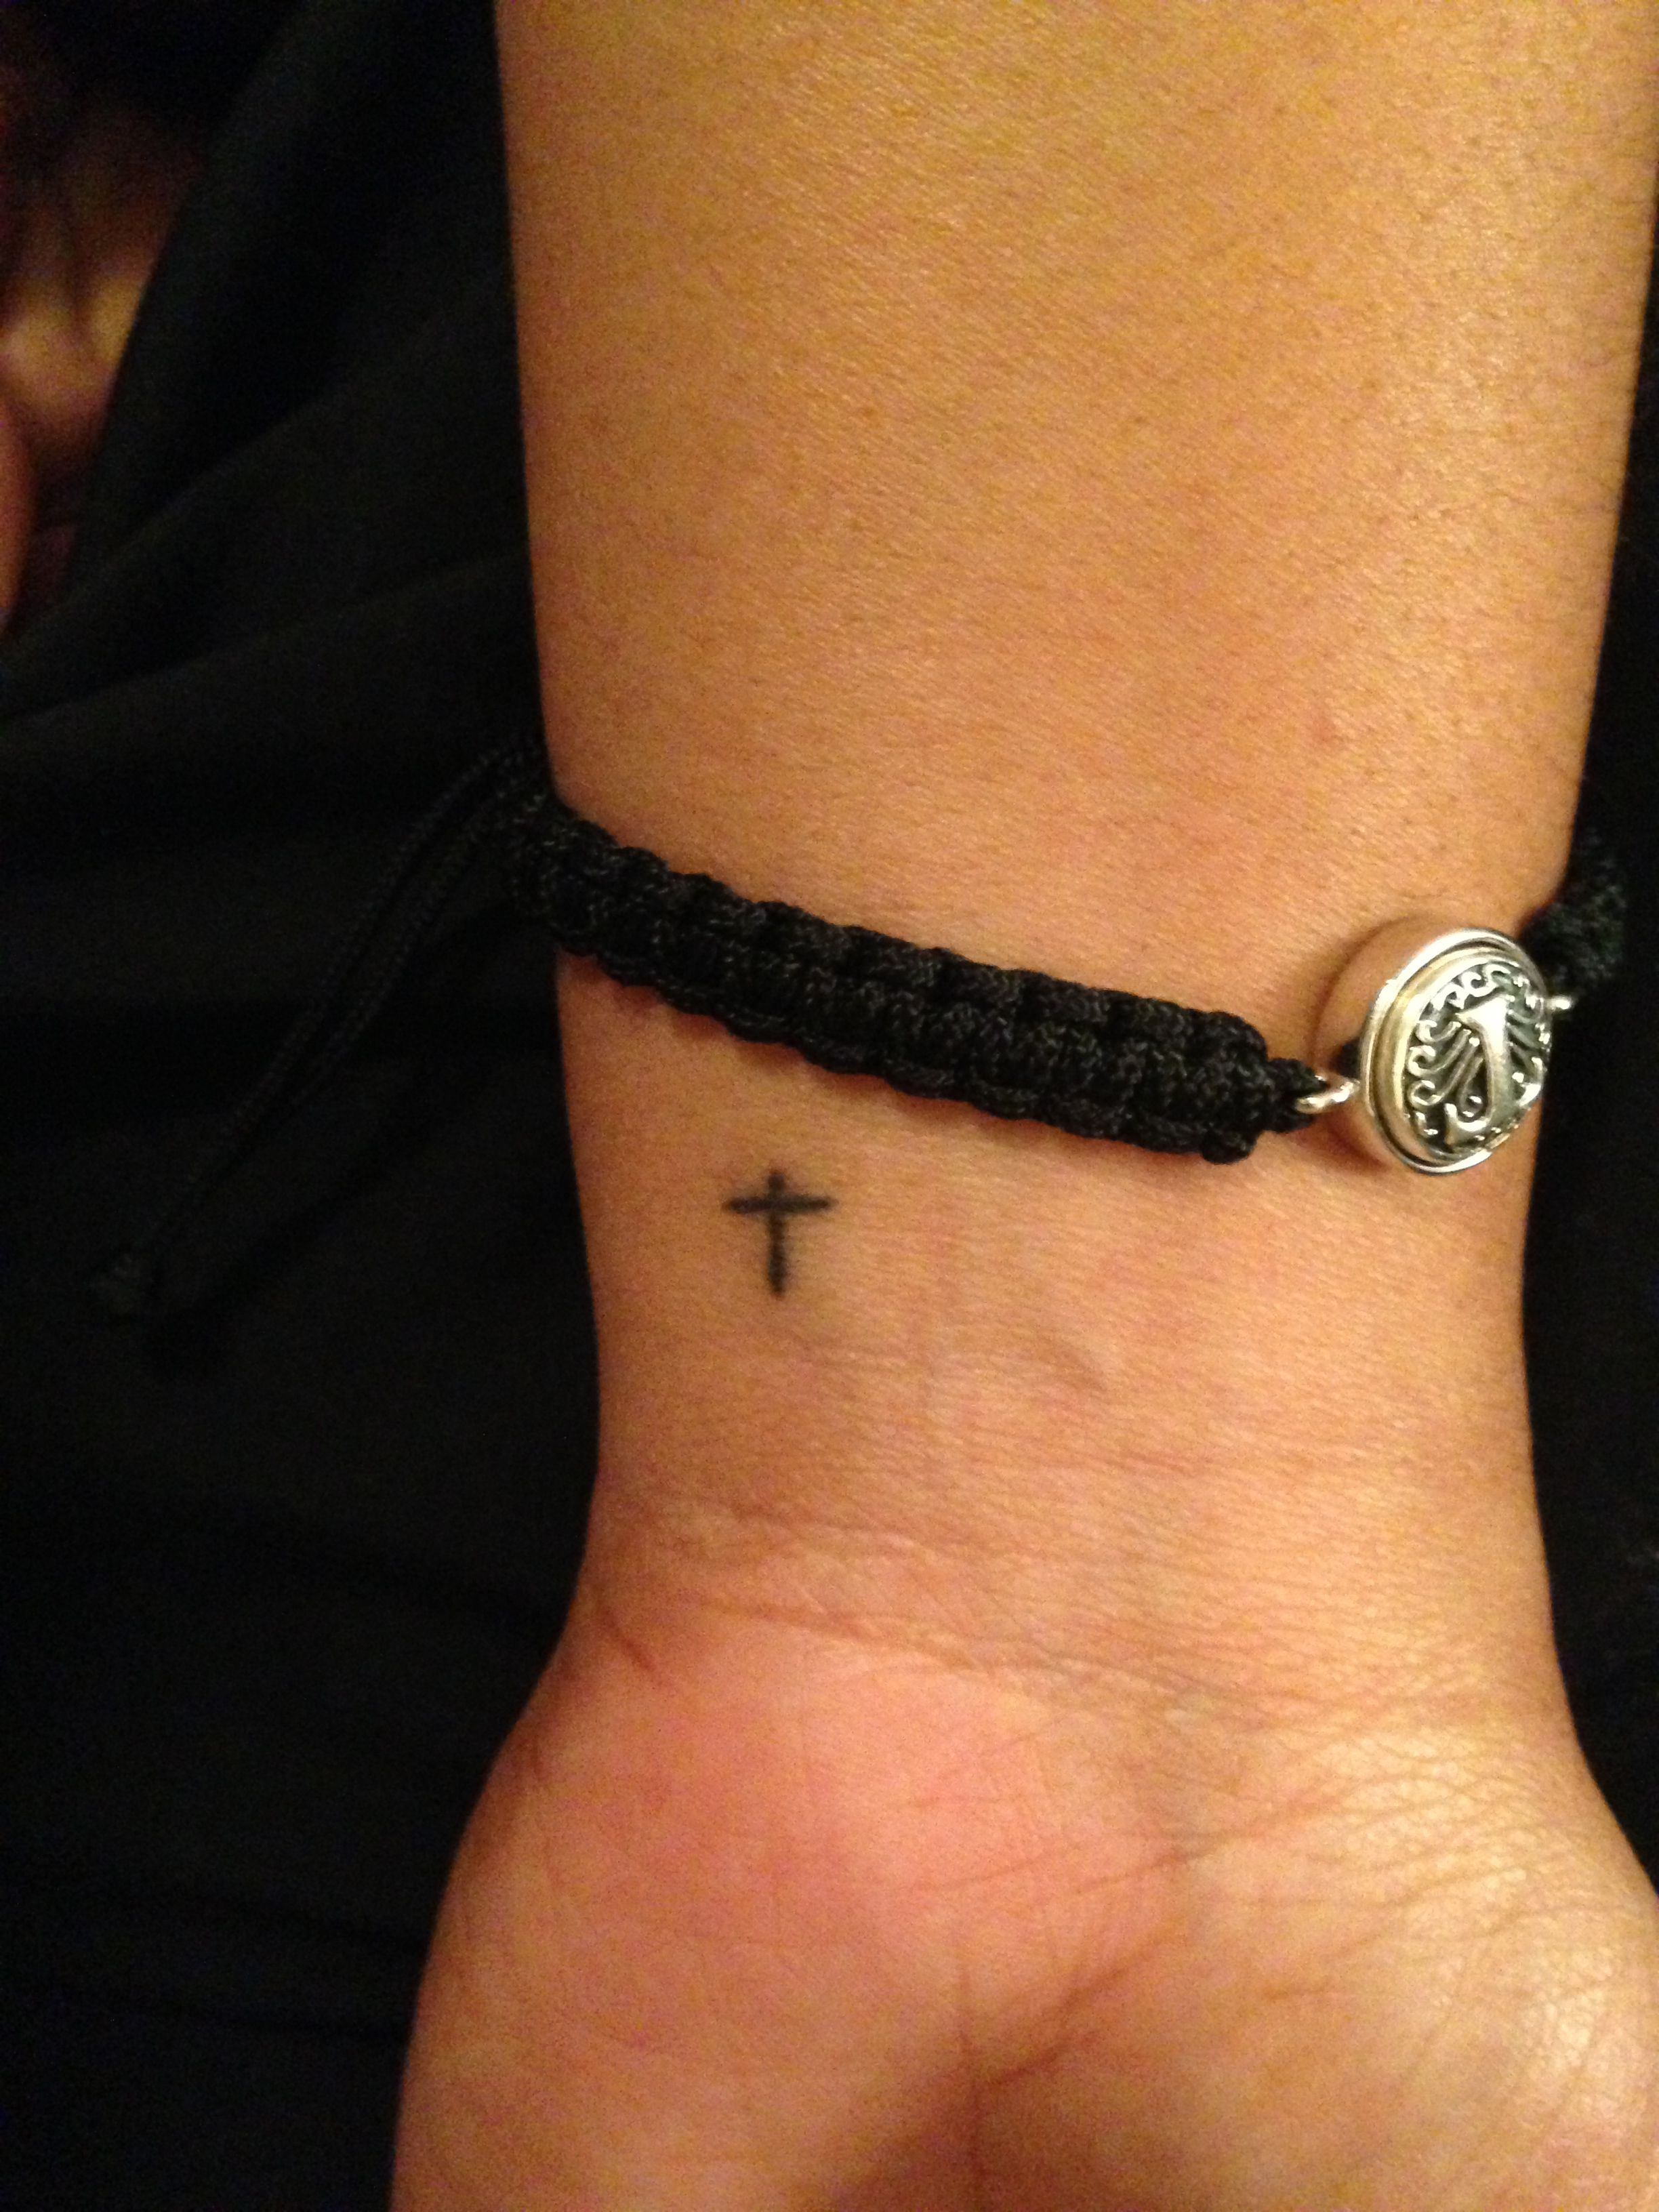 Tiny cross tattoo tattoos pinterest tattoo tatting and